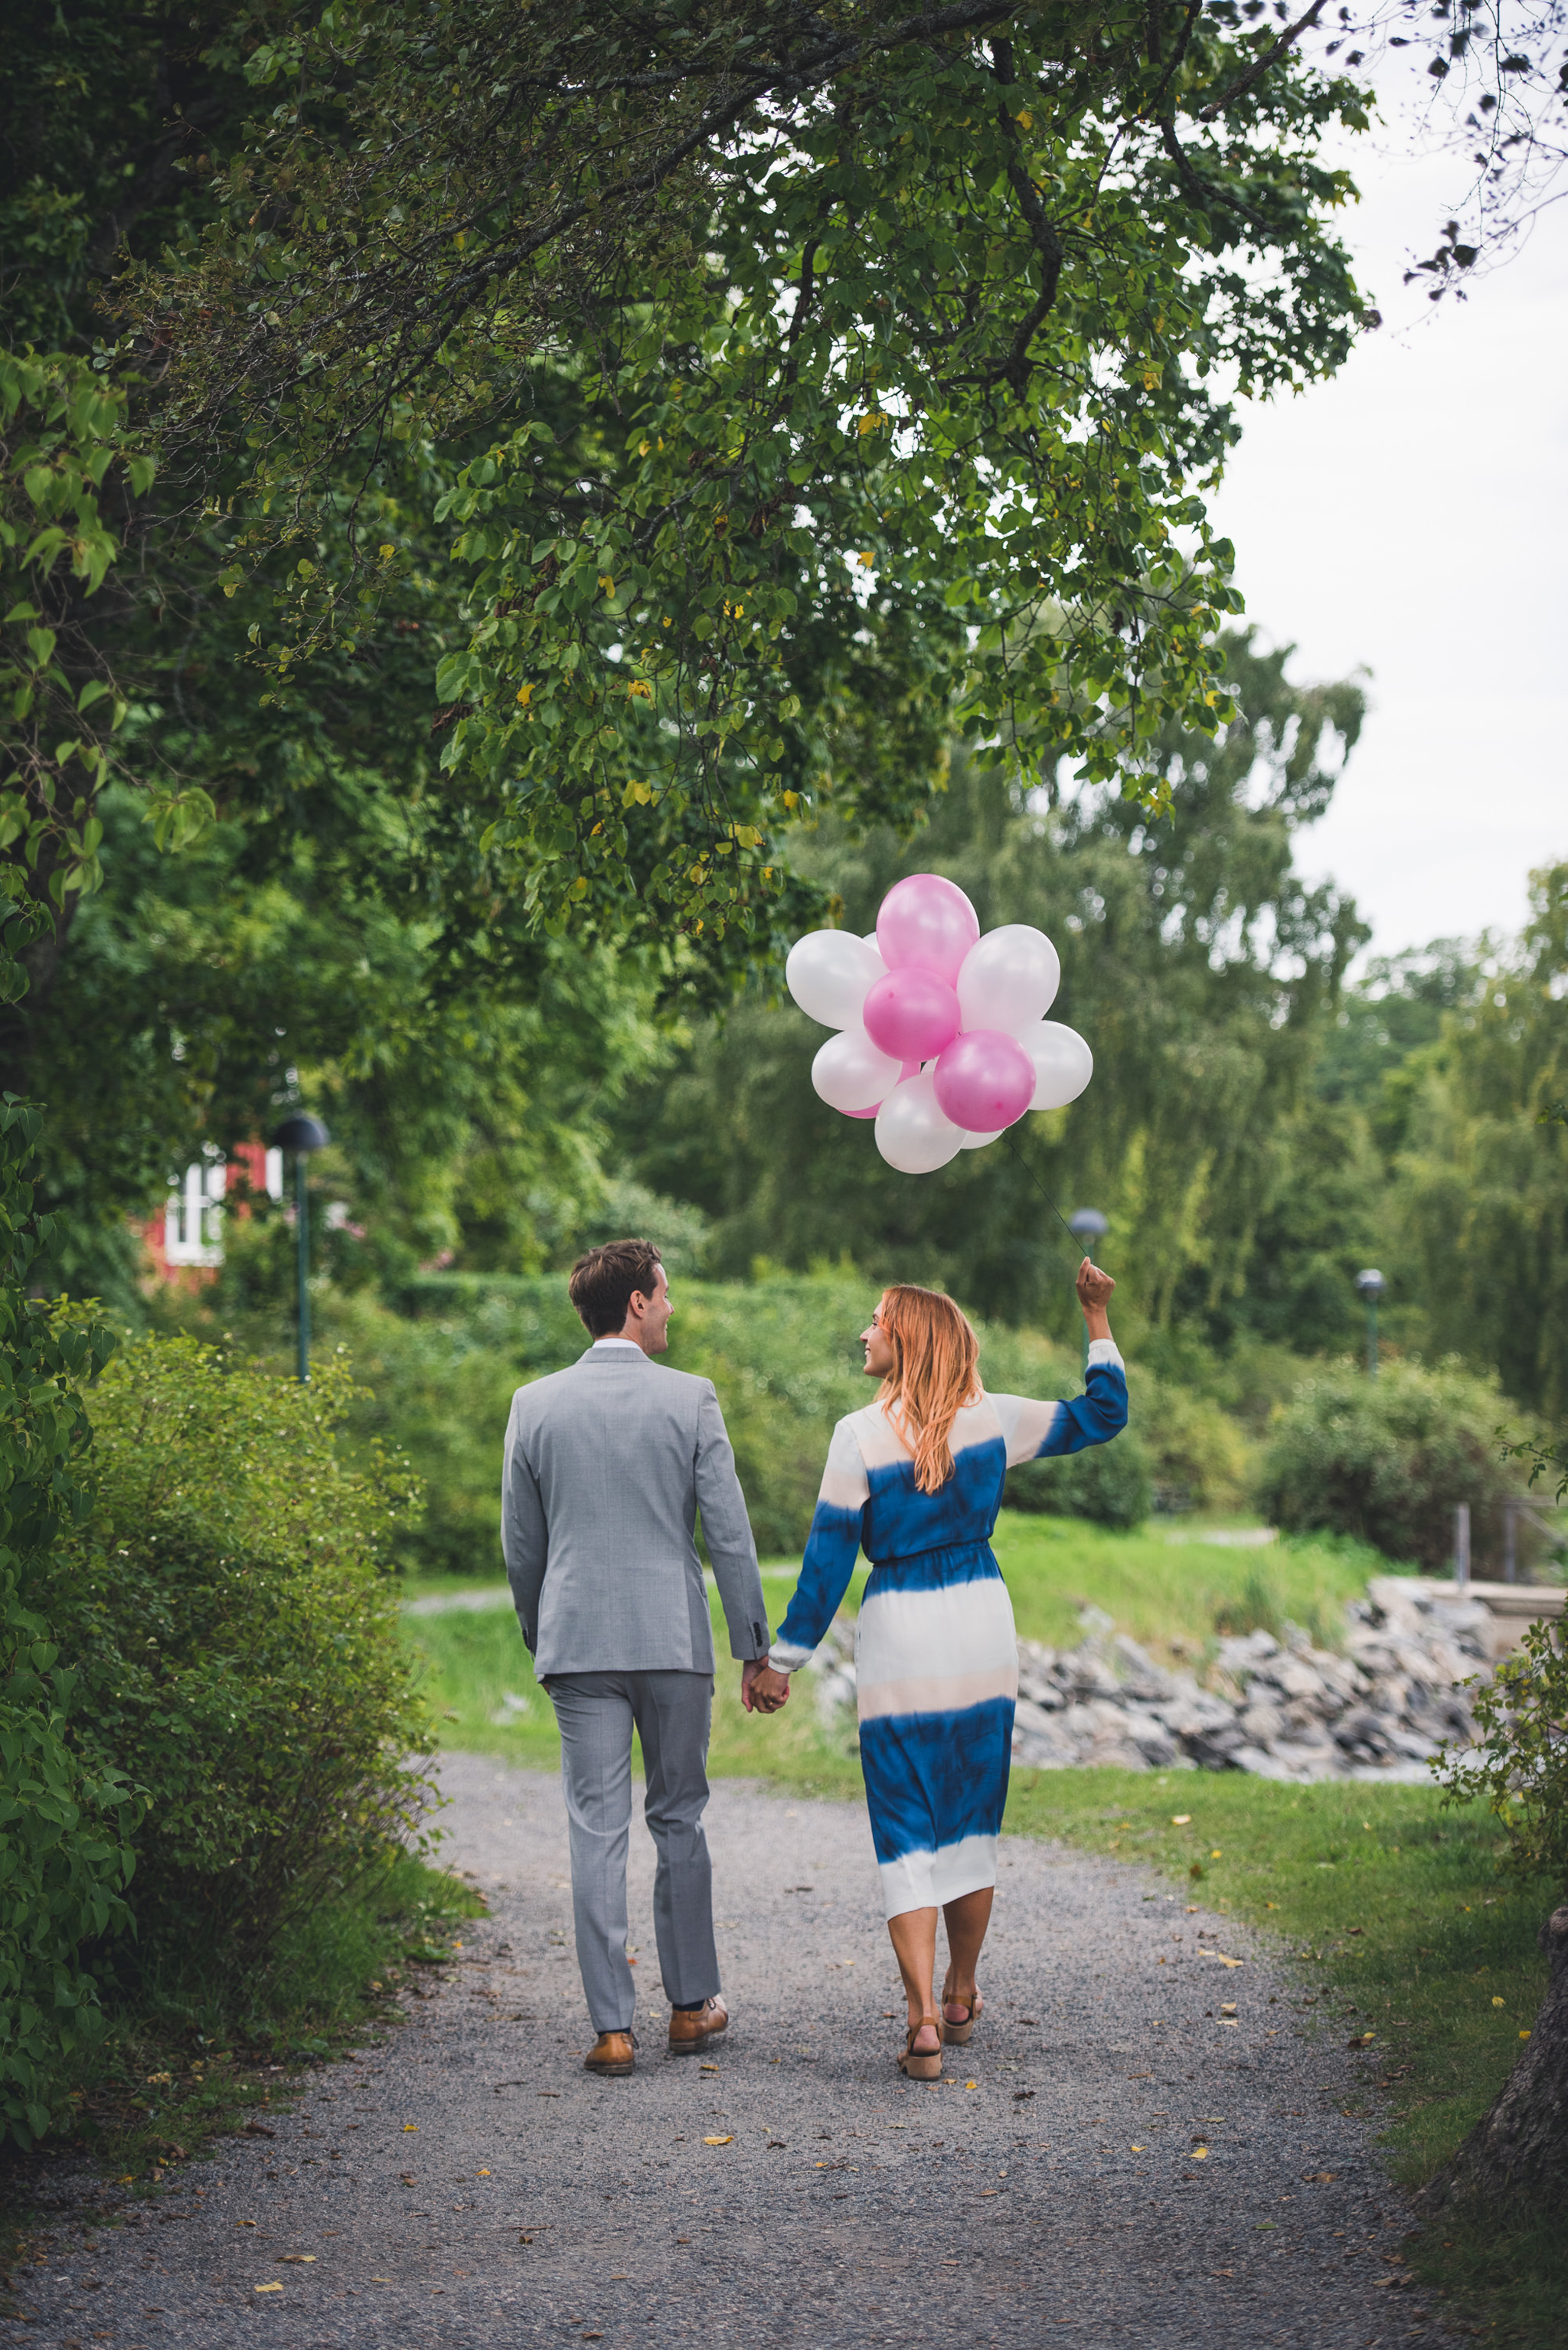 the newlyweds walking away with balloons